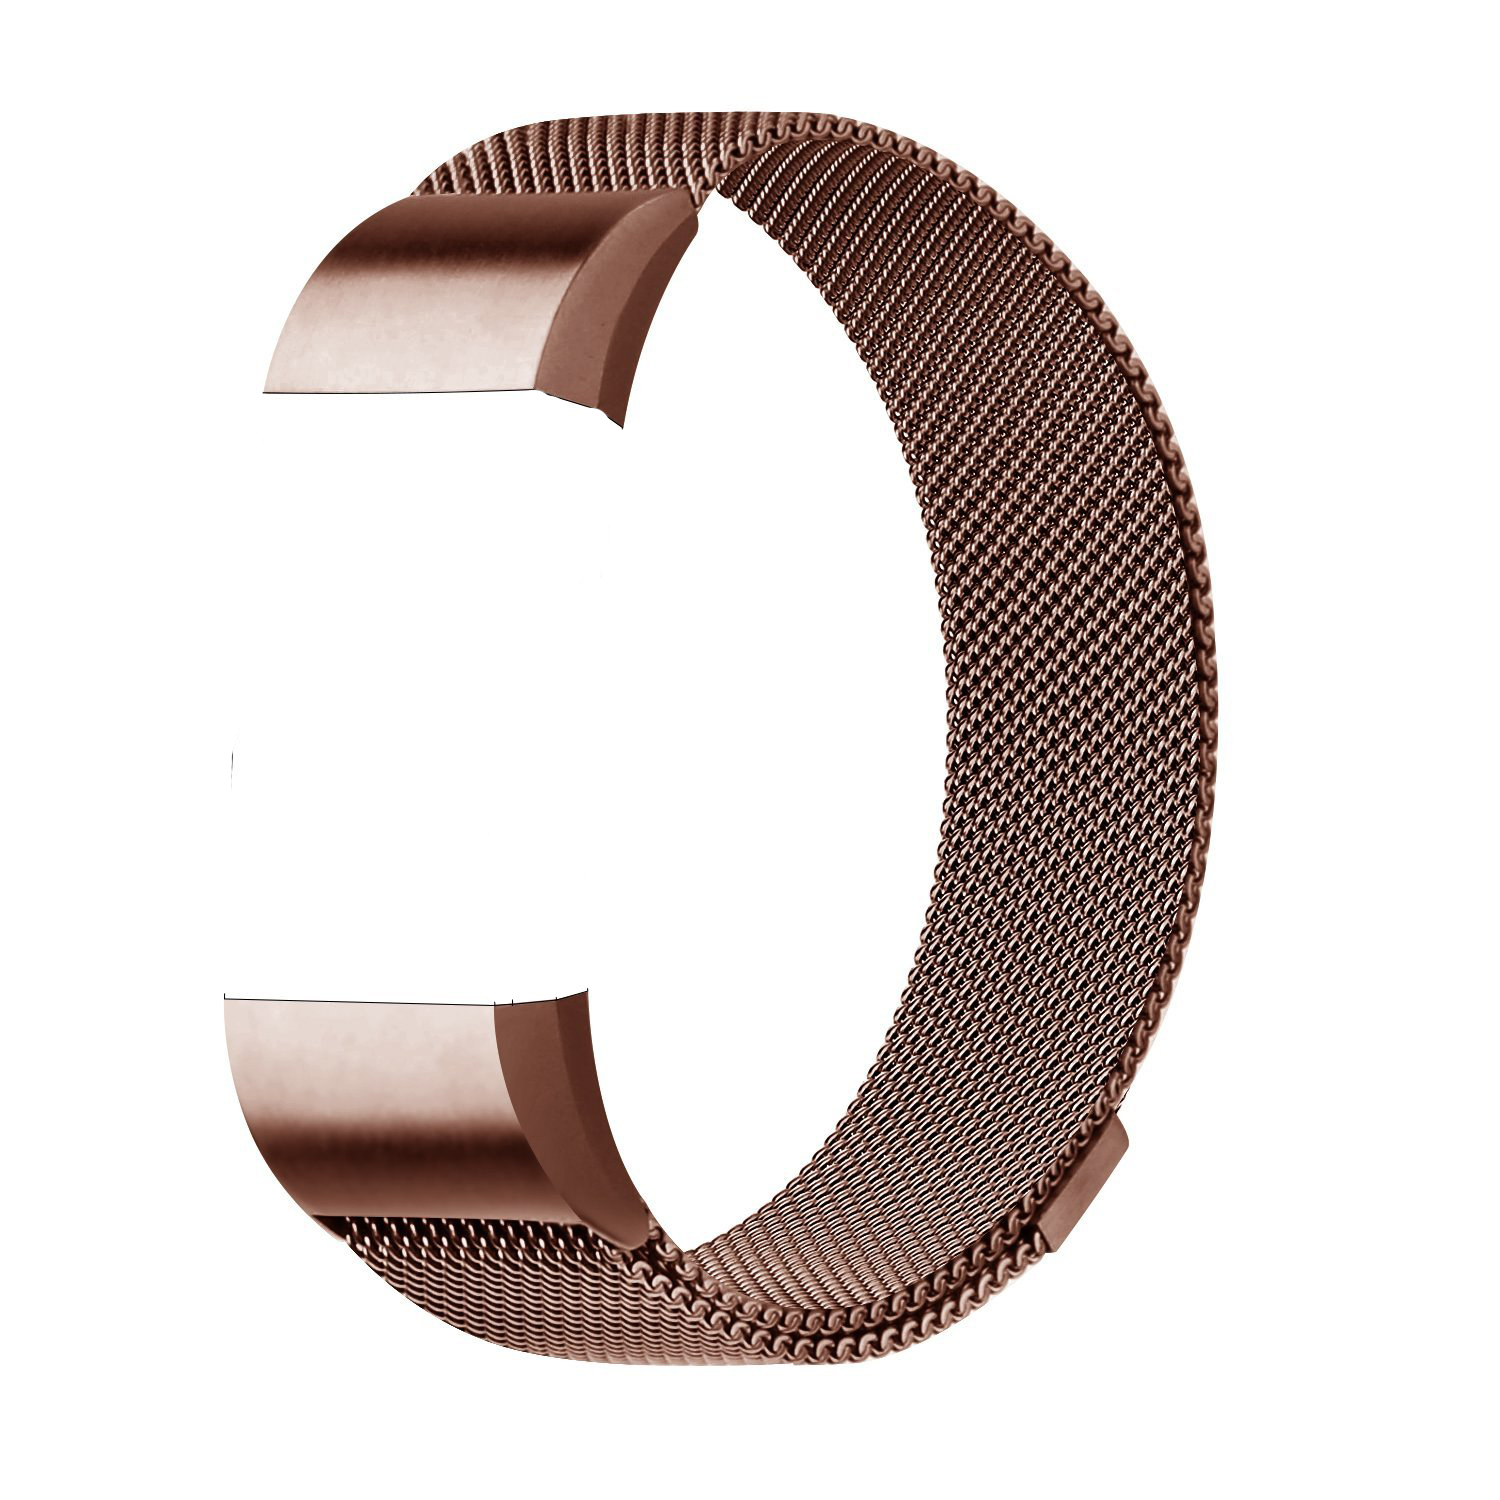 Igk Igk Fitbit Charge 2 Bands Replacement Accessories Milanese